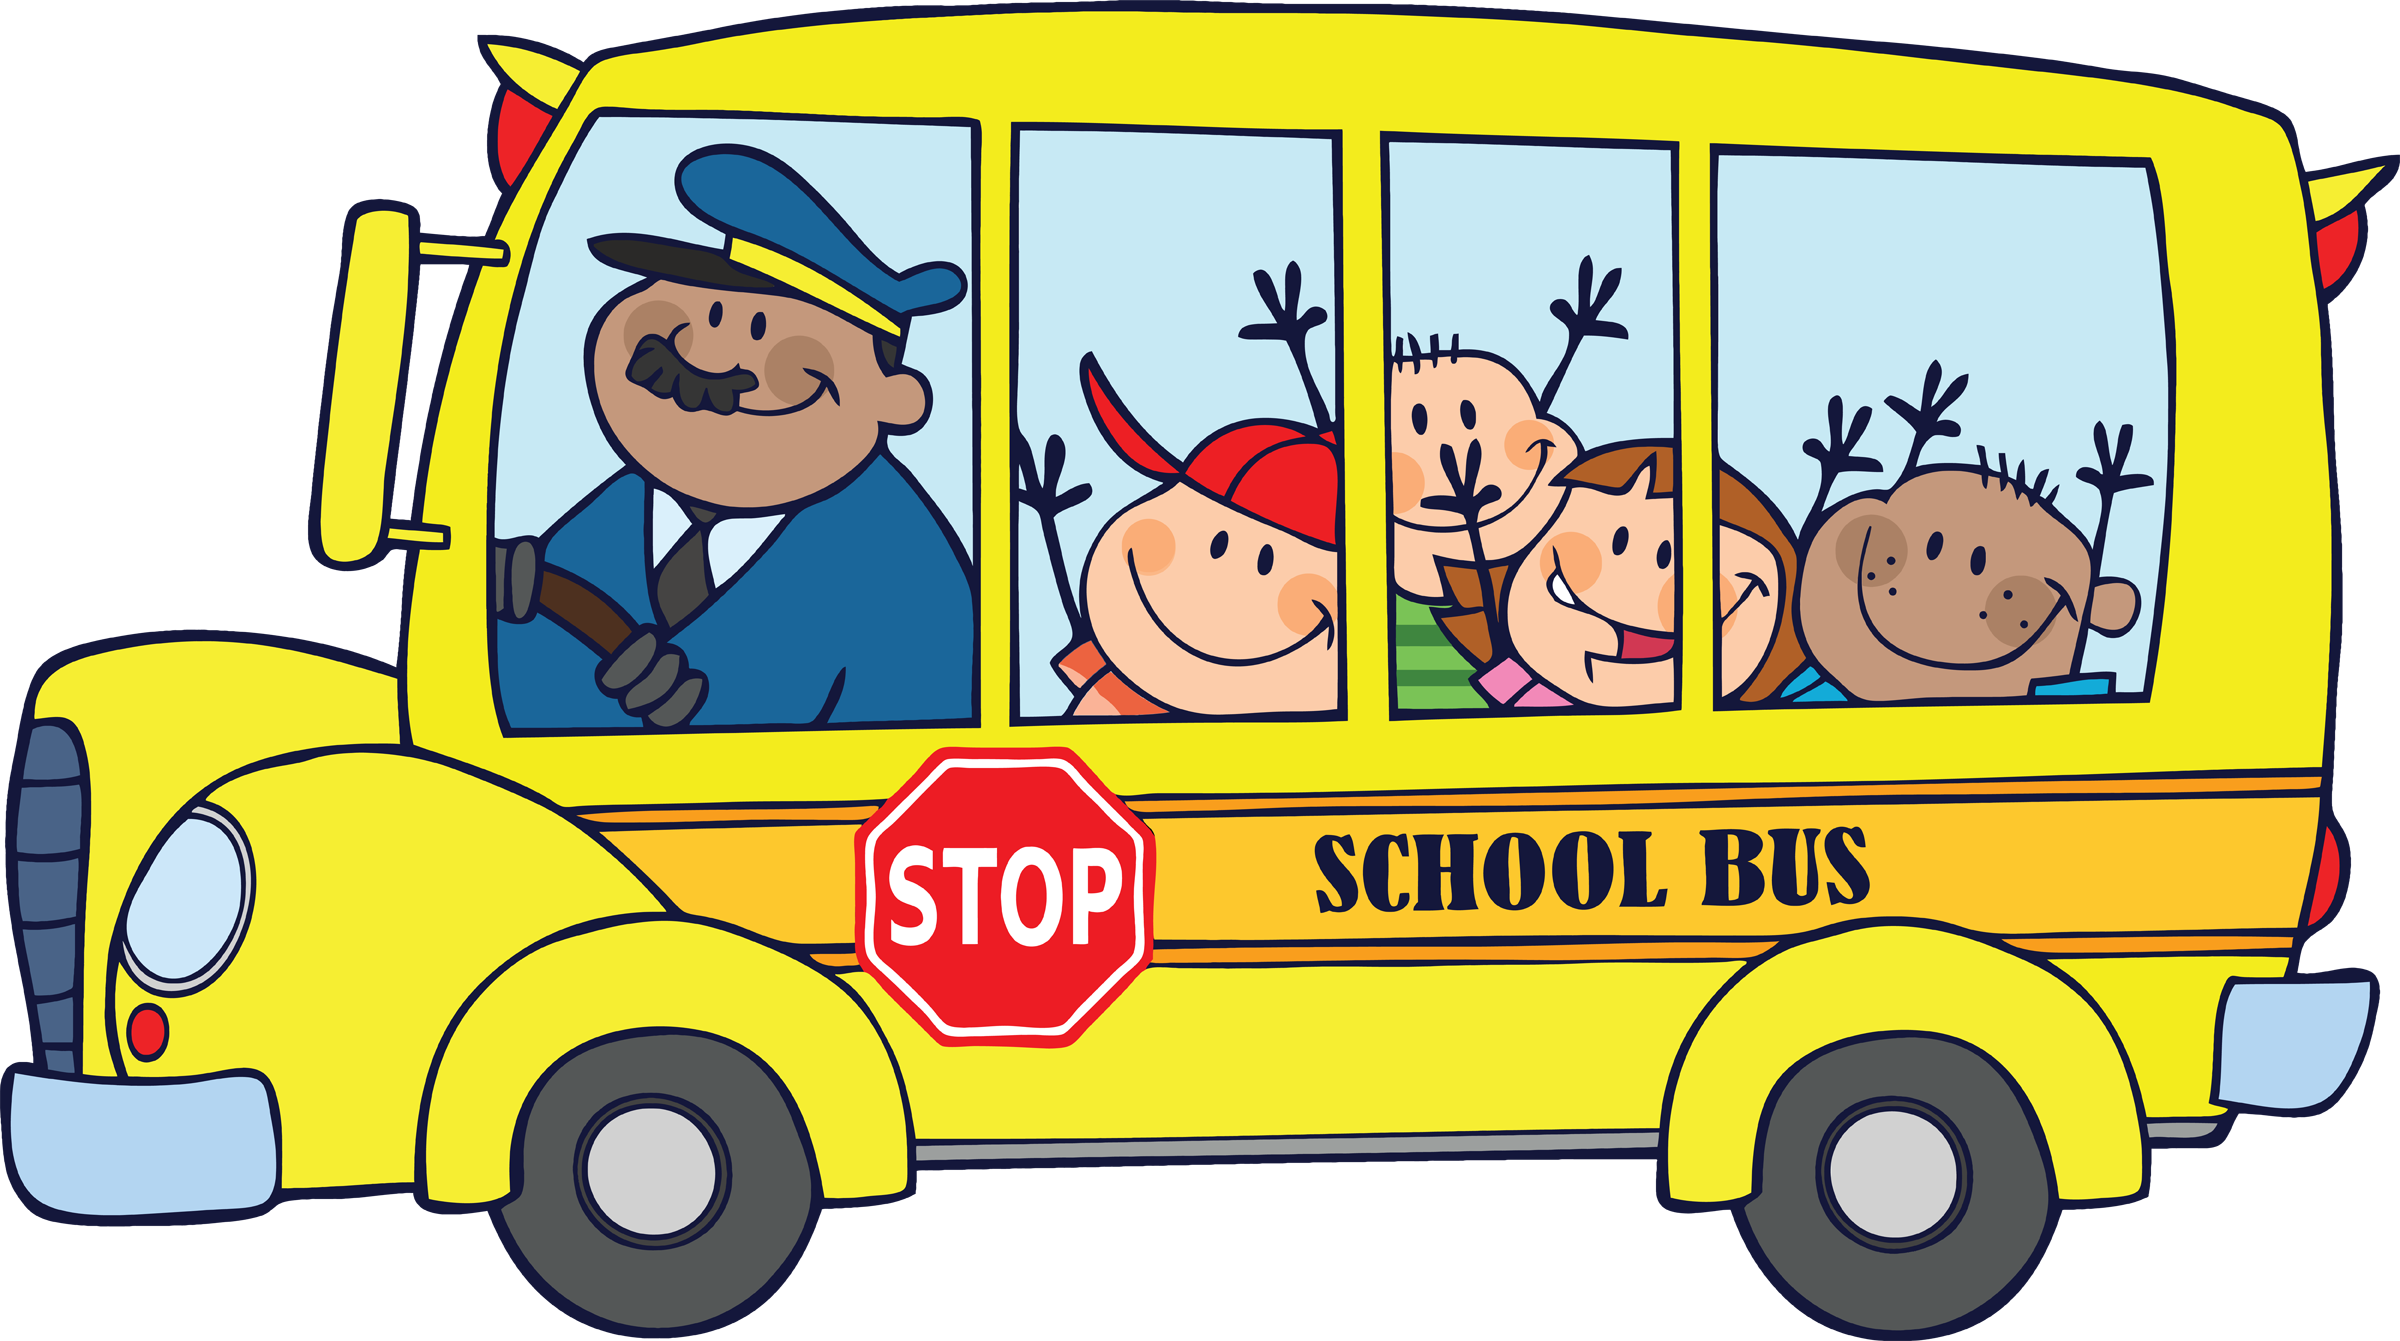 school bus driver quotes clipart panda free clipart images rh pinterest com Catching School Bus Clip Art school bus stop sign clip art